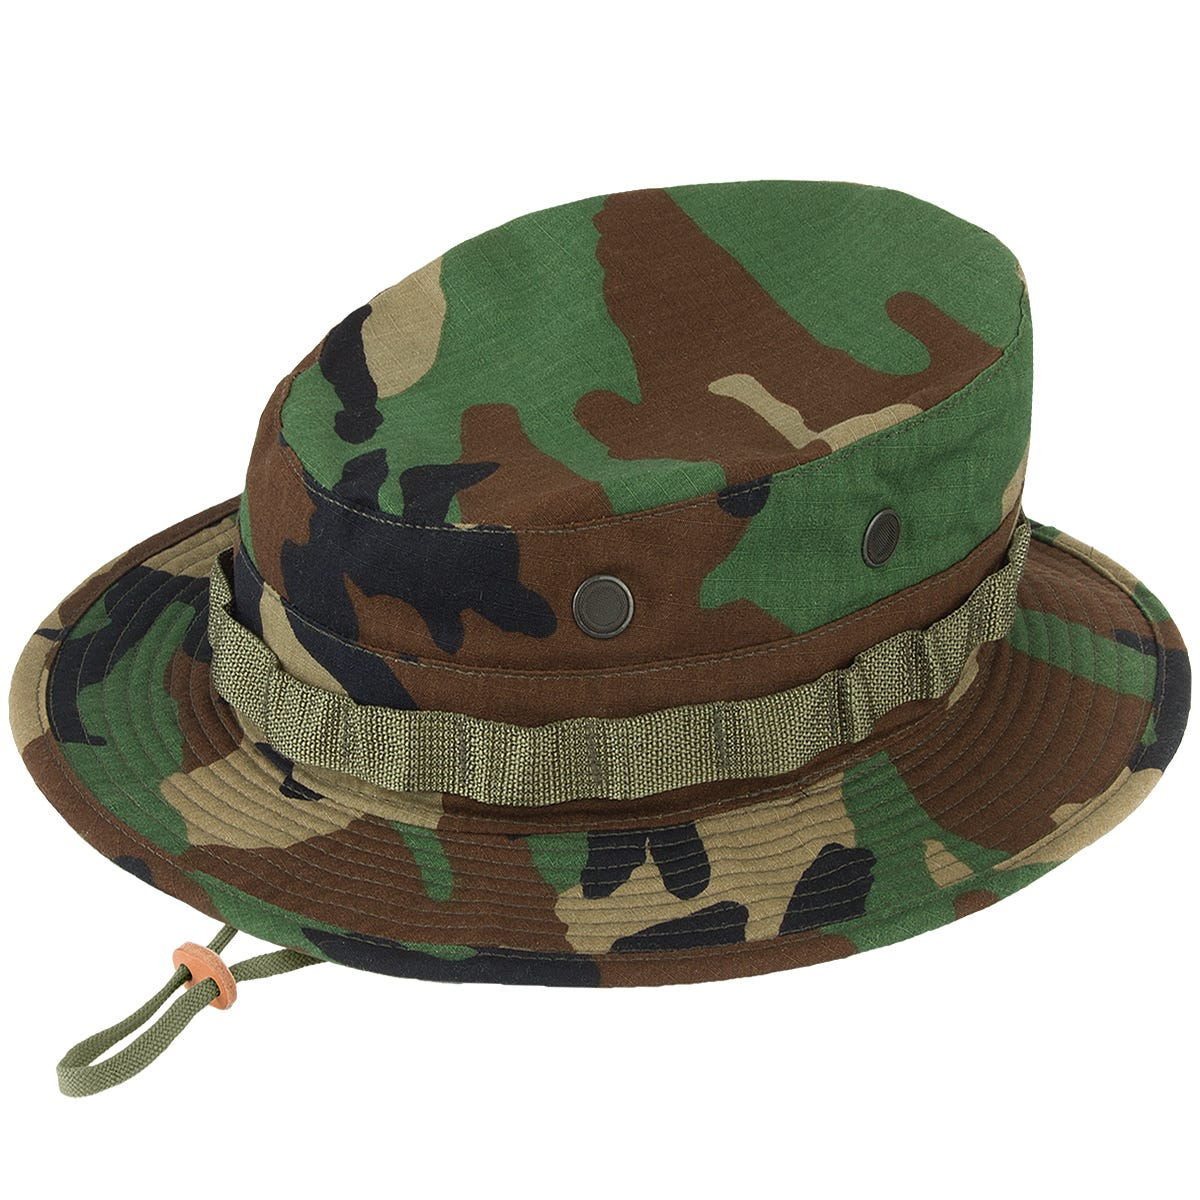 Propper Boonie Hat Cotton Ripstop Woodland a40985ab56d